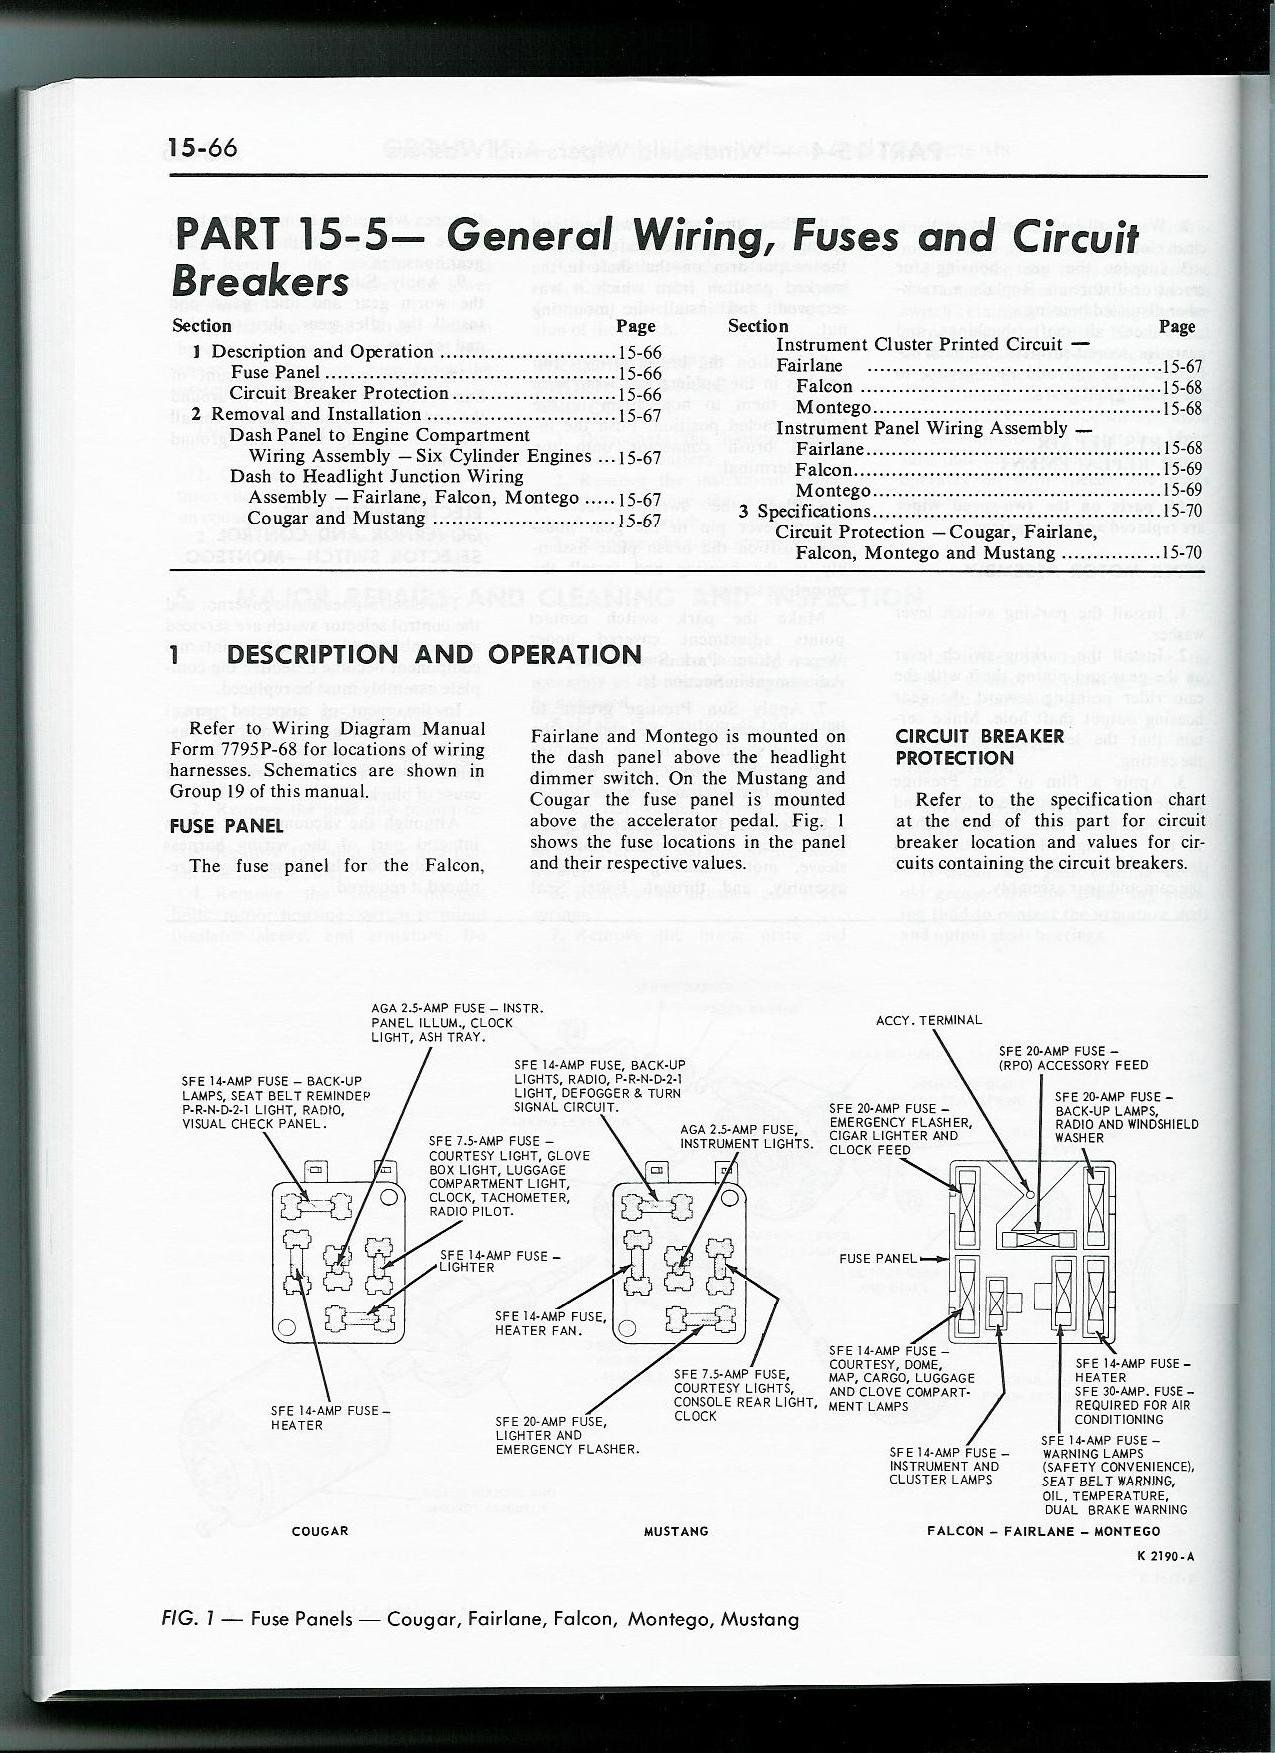 1965 Mustang fuse panel / fuse box diagram?-68-fuse-box.jpg